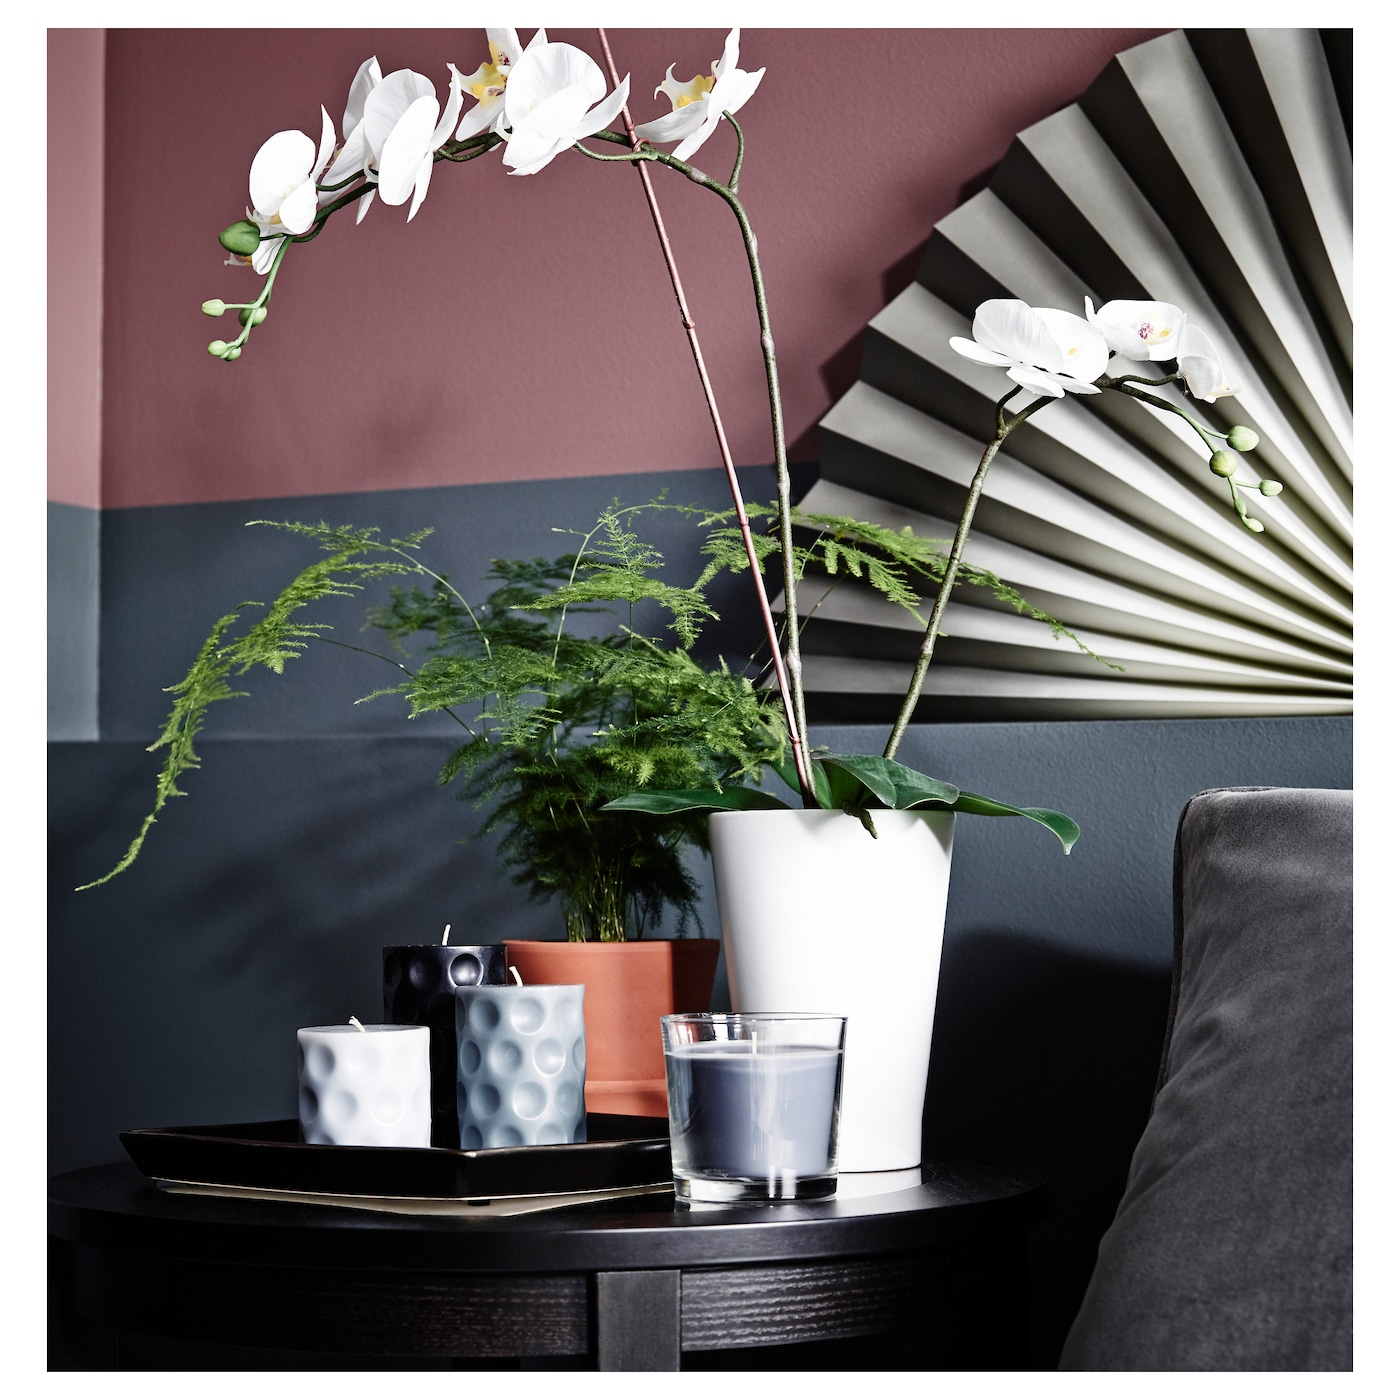 IKEA PAPAJA plant pot The shape and height of the pot make it suitable for orchids.